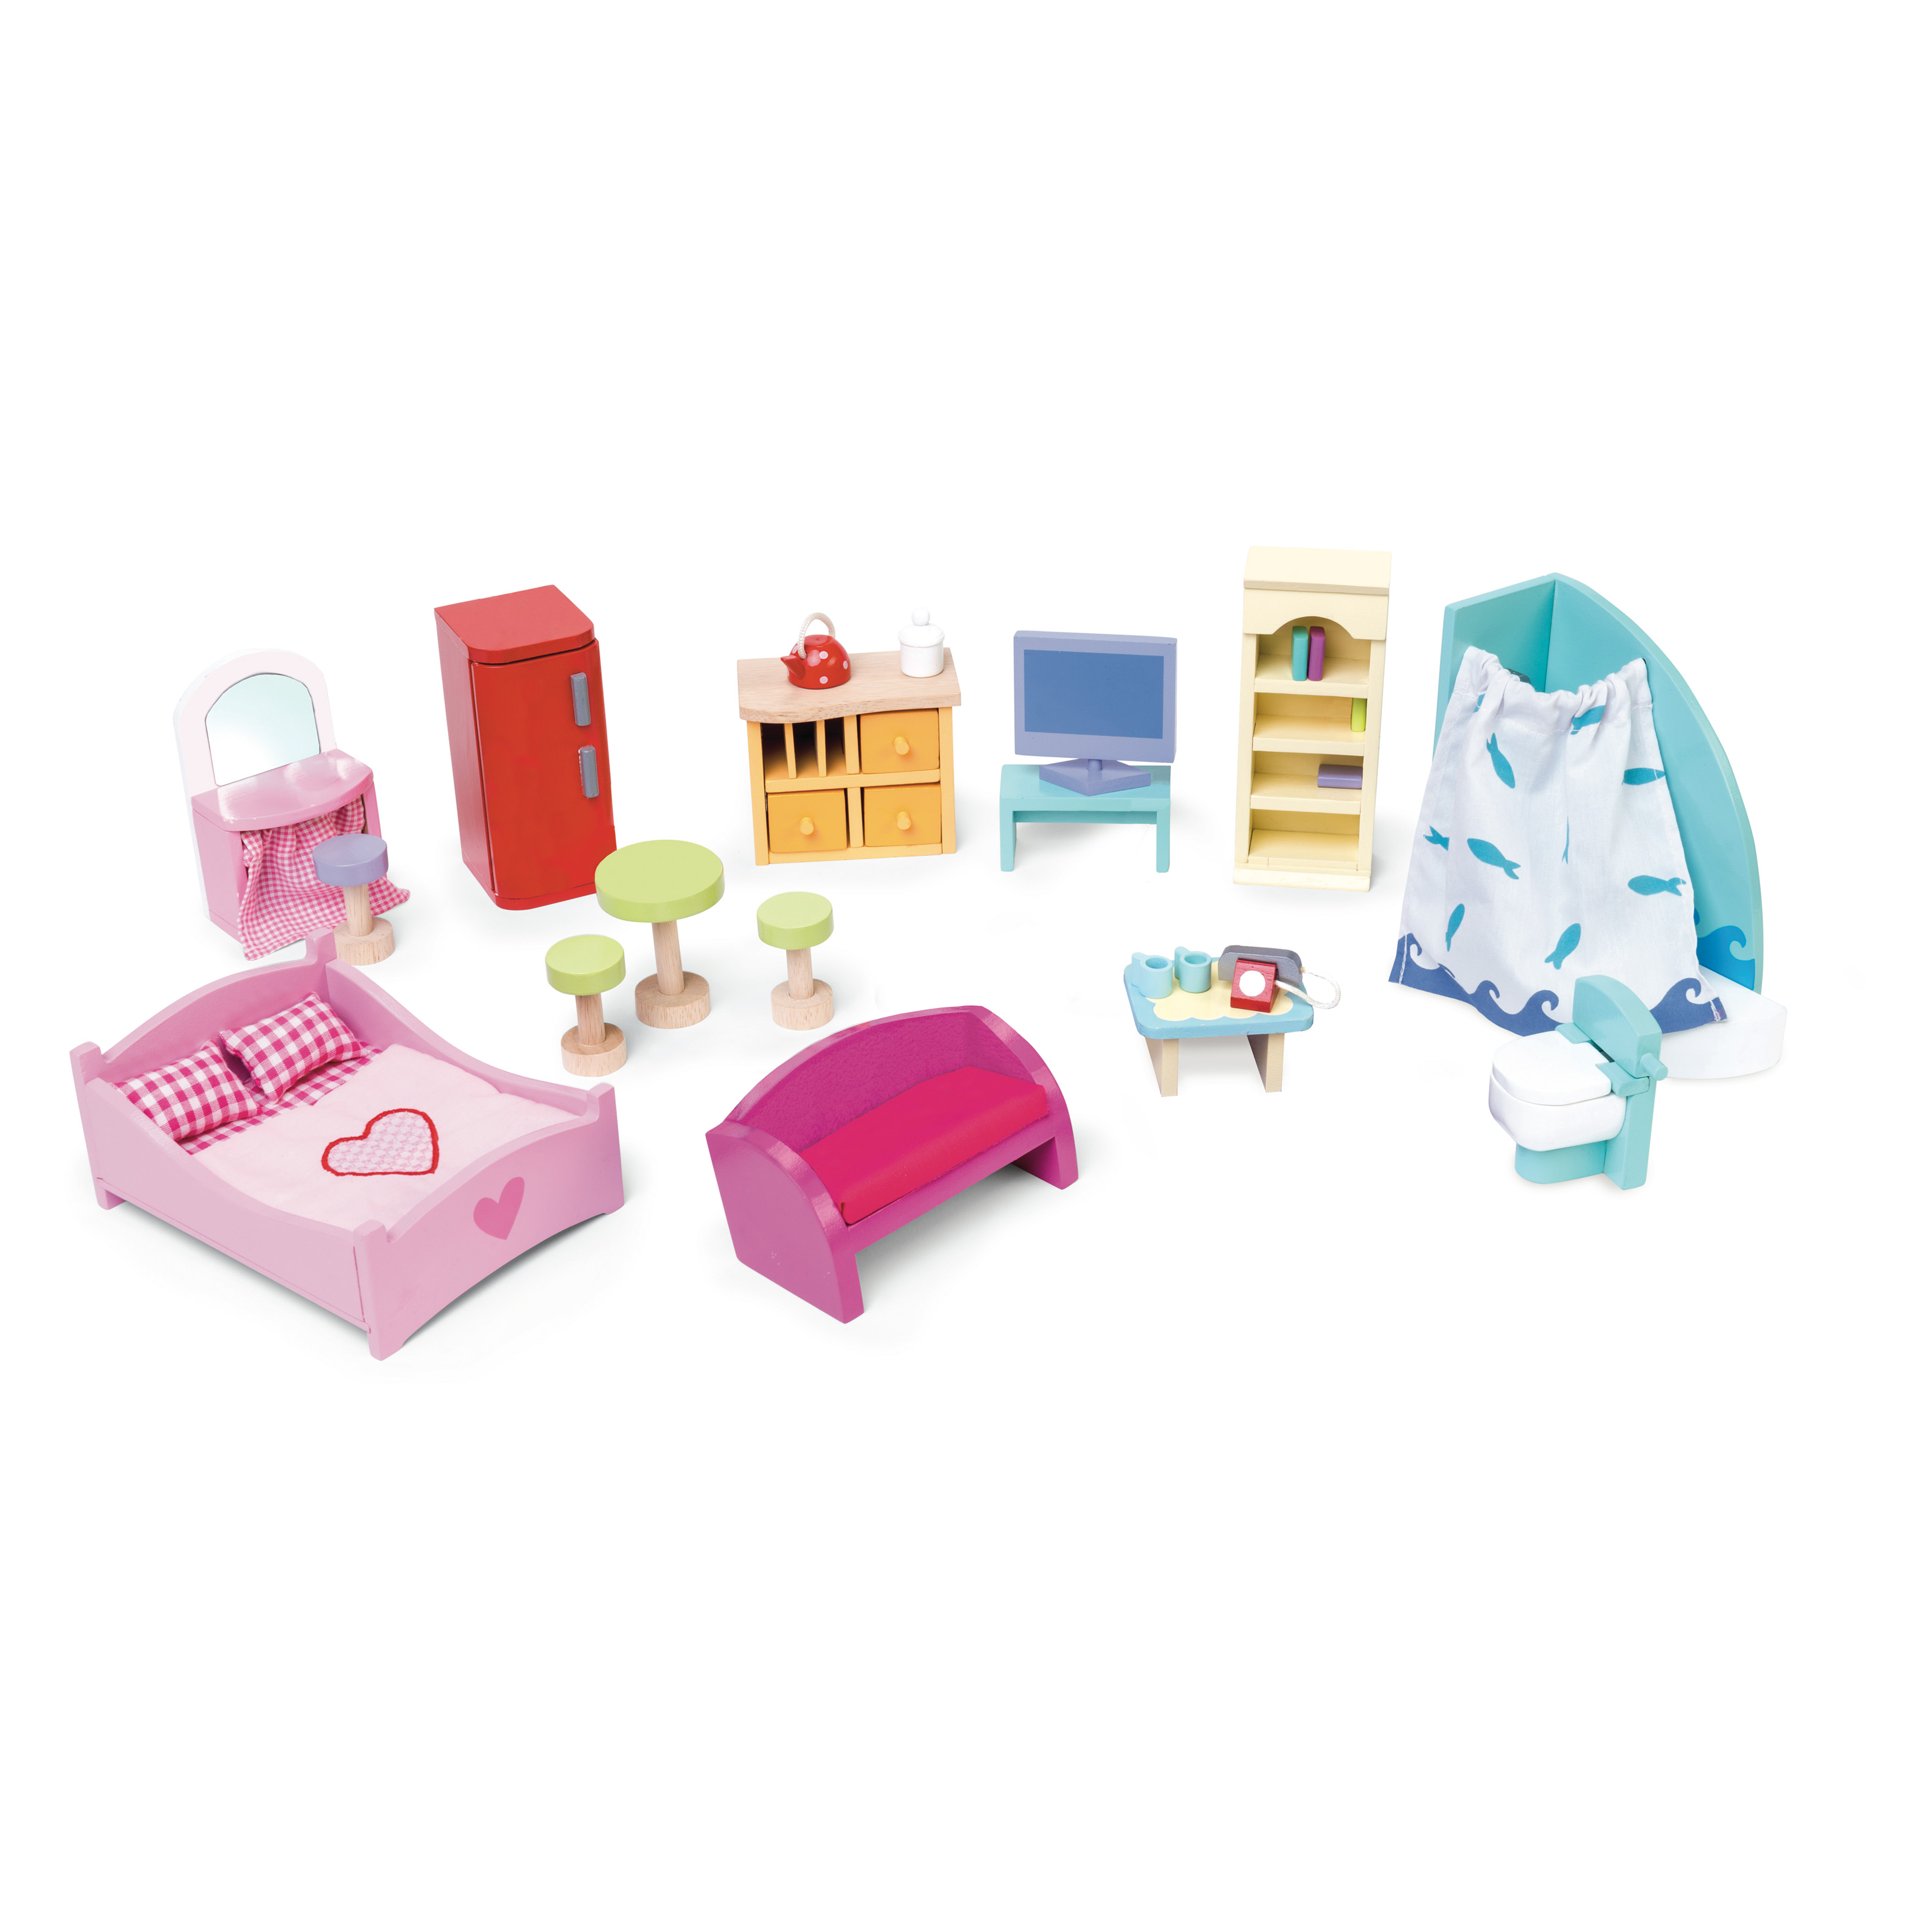 Le Toy Van Deluxe Starter Furniture Set Toy Dollhouse